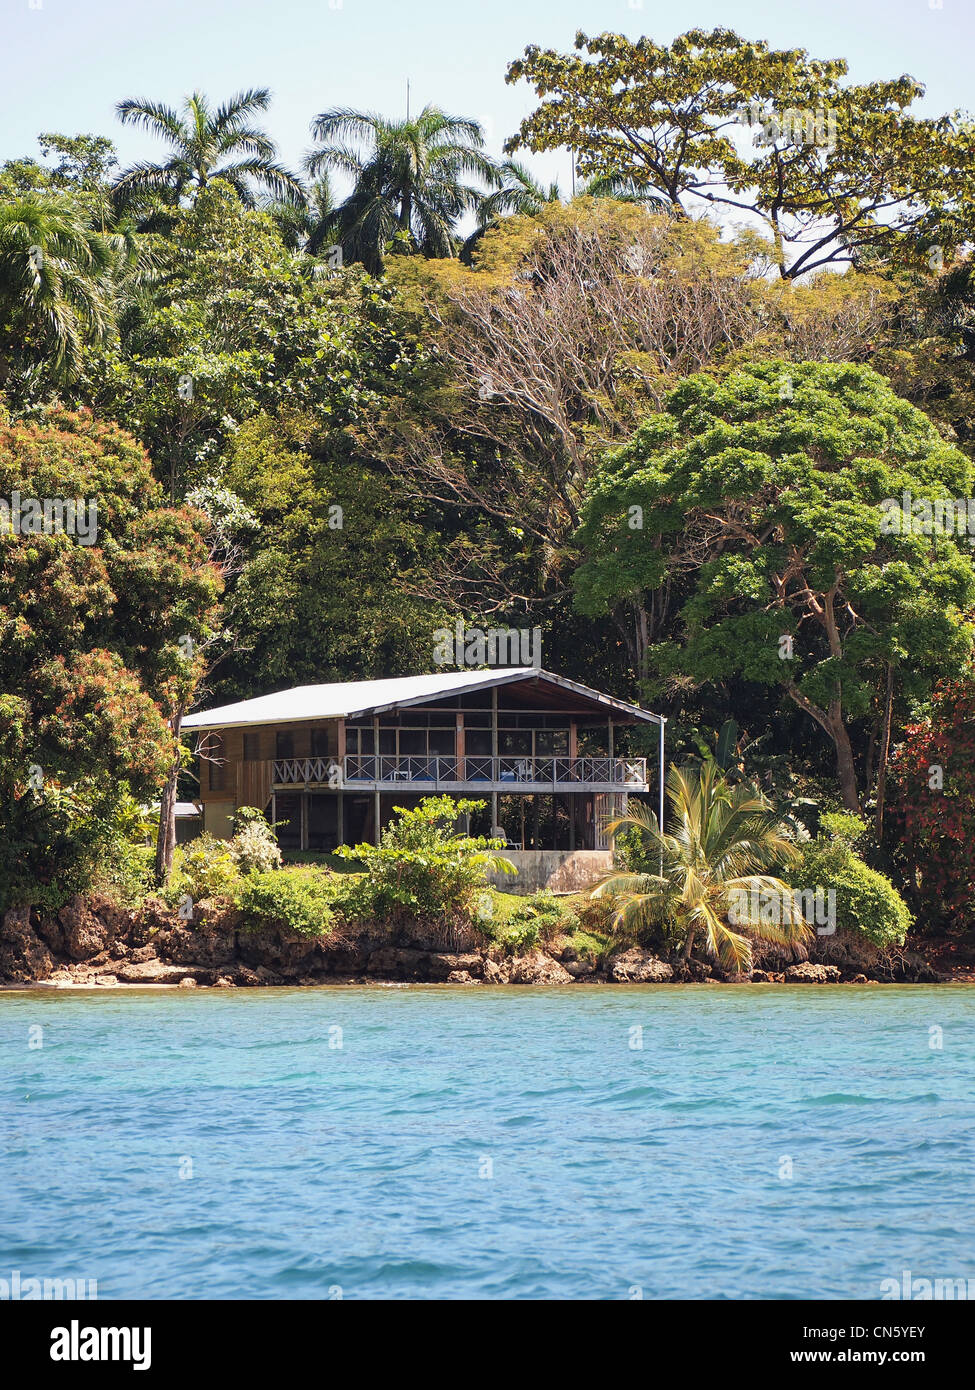 Waterfront Caribbean home surrounded by lush tropical vegetation, Bocas del Toro, Panama - Stock Image